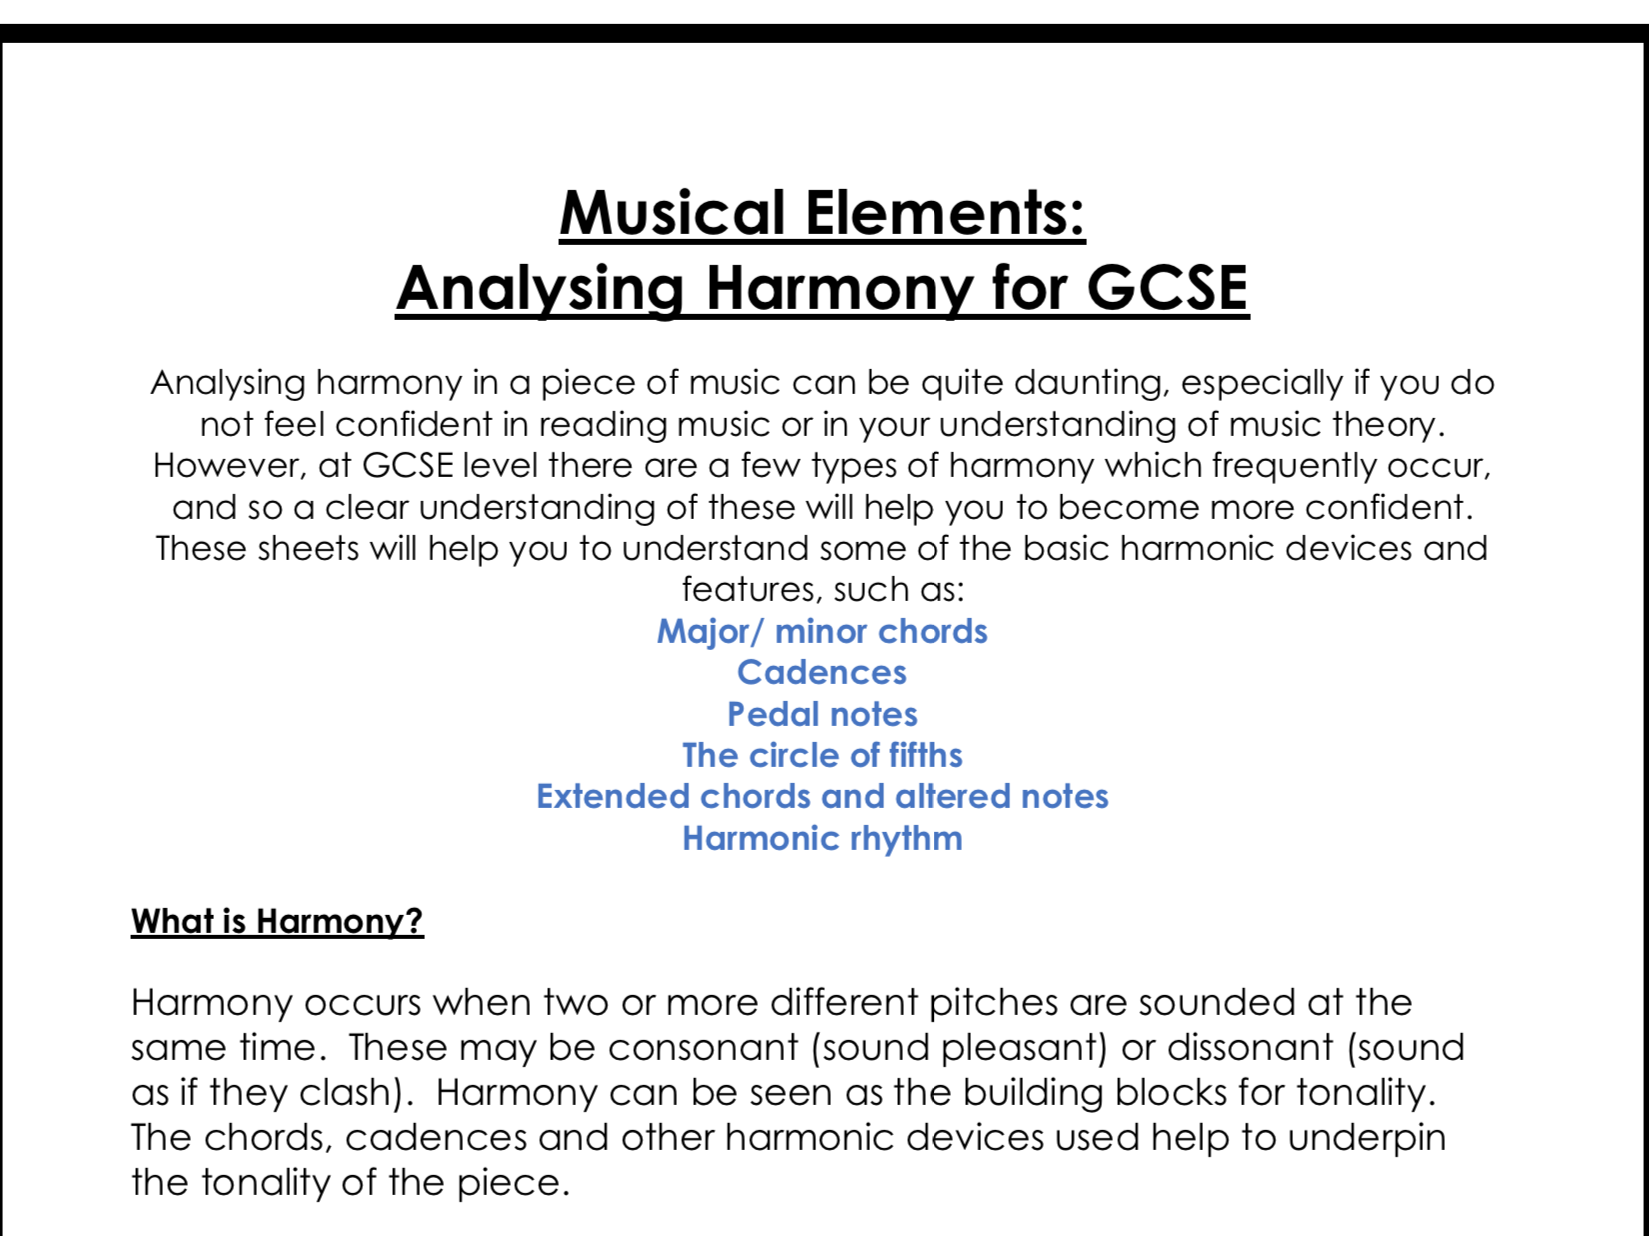 Analysing musical elements for GCSE Music